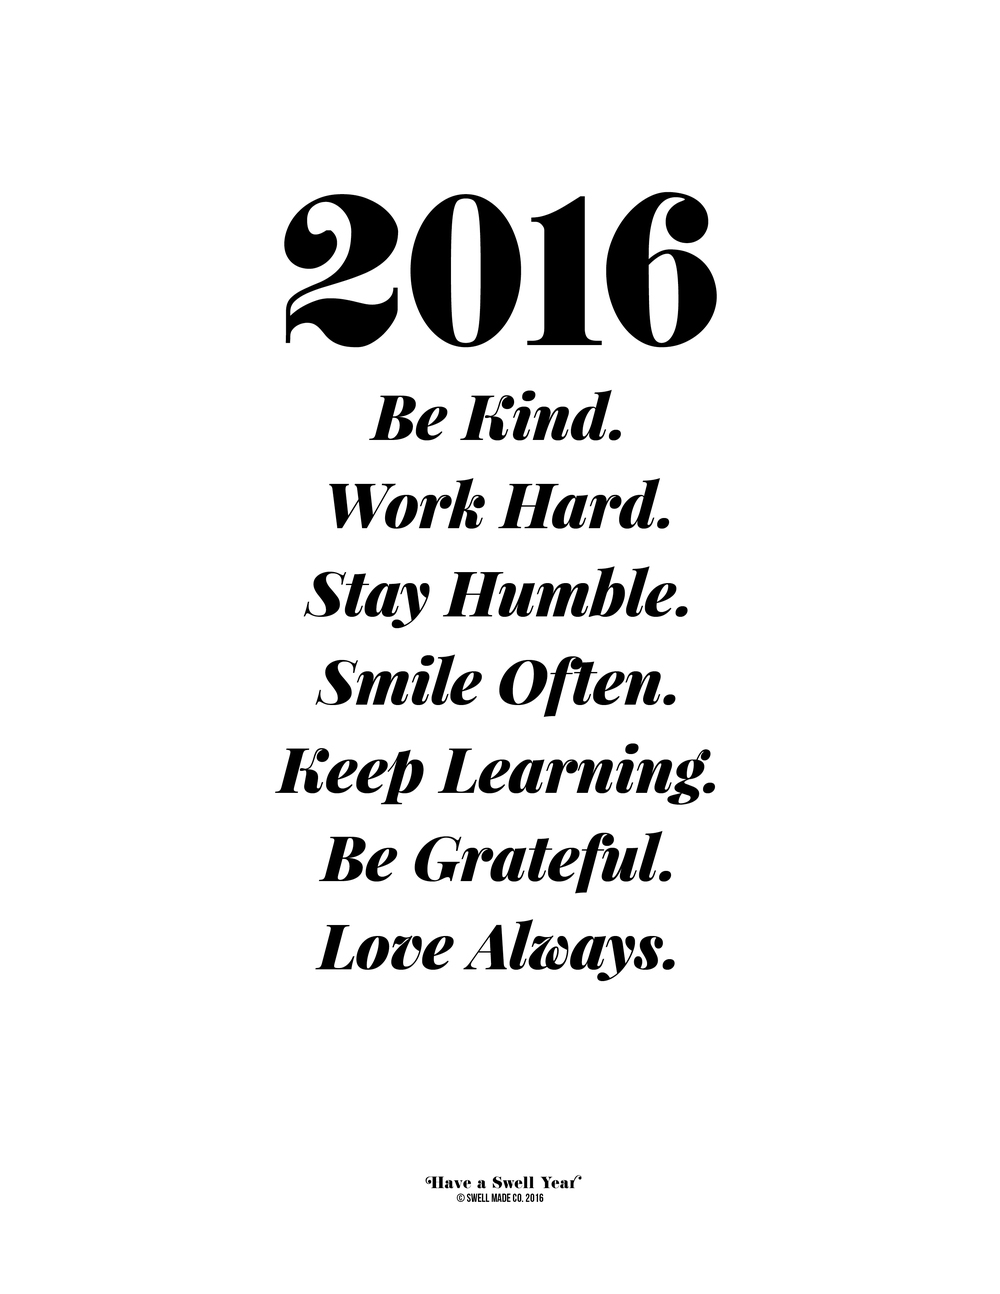 Simple goals for 2016.